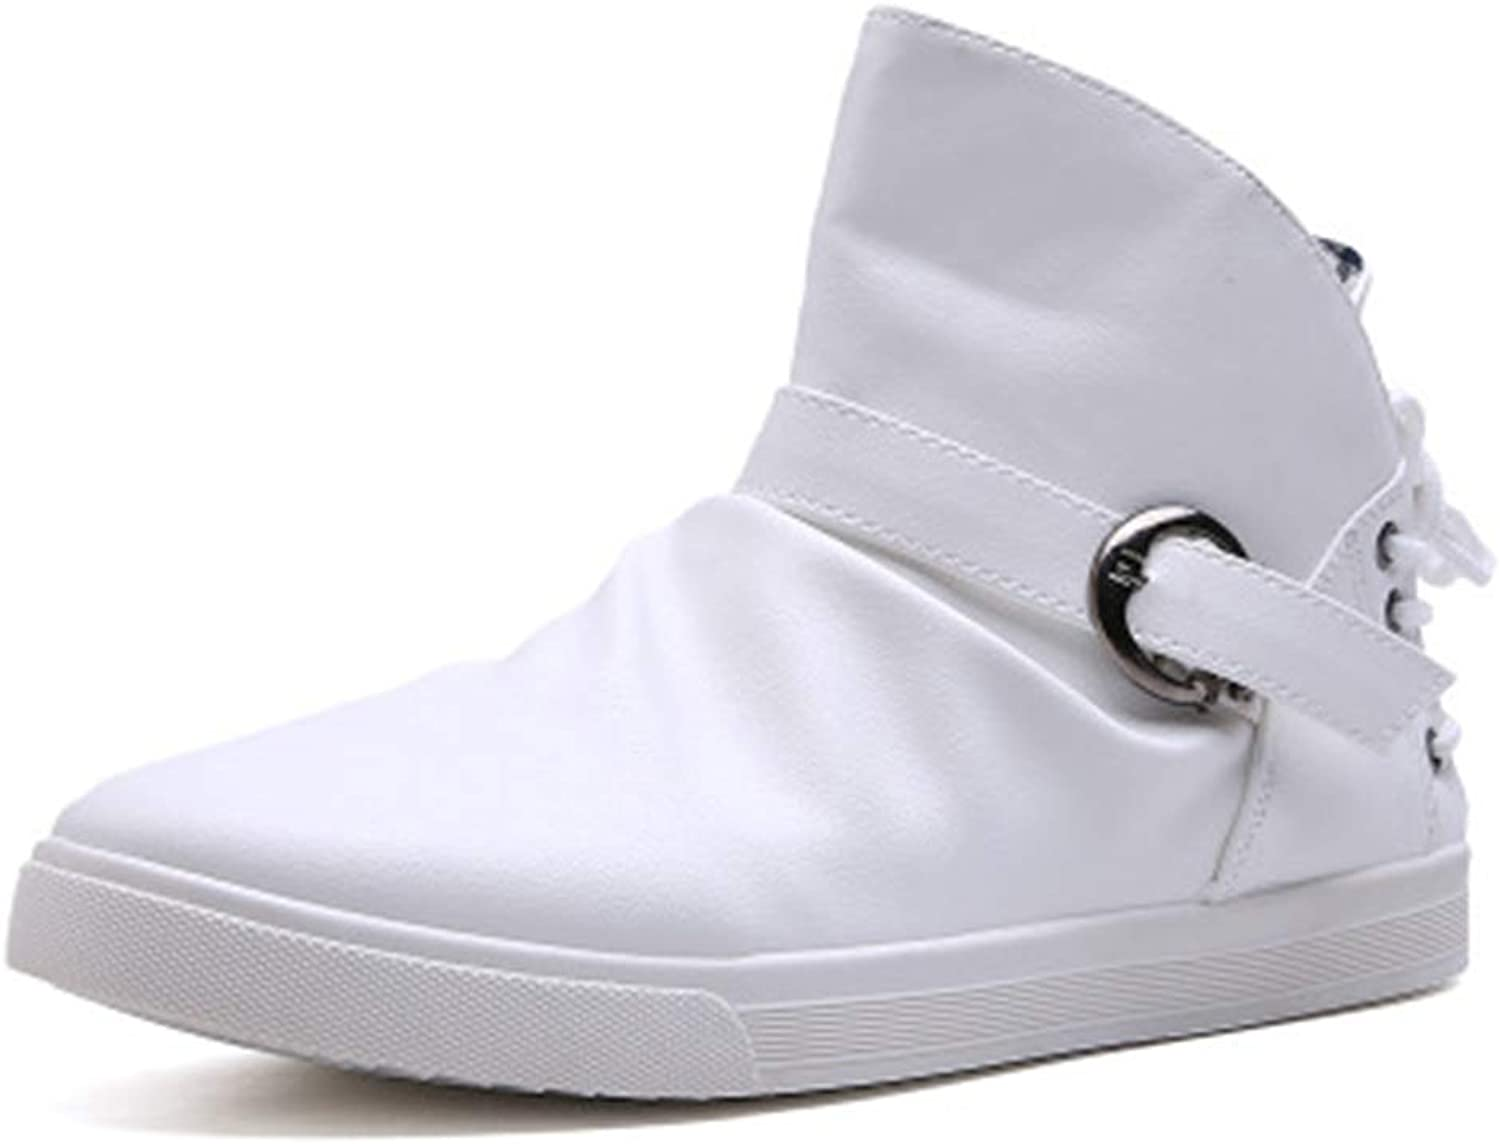 MIKA HOM Womens High Top Canvas shoes Belt Buckle Casual shoes Fashion Sneakers